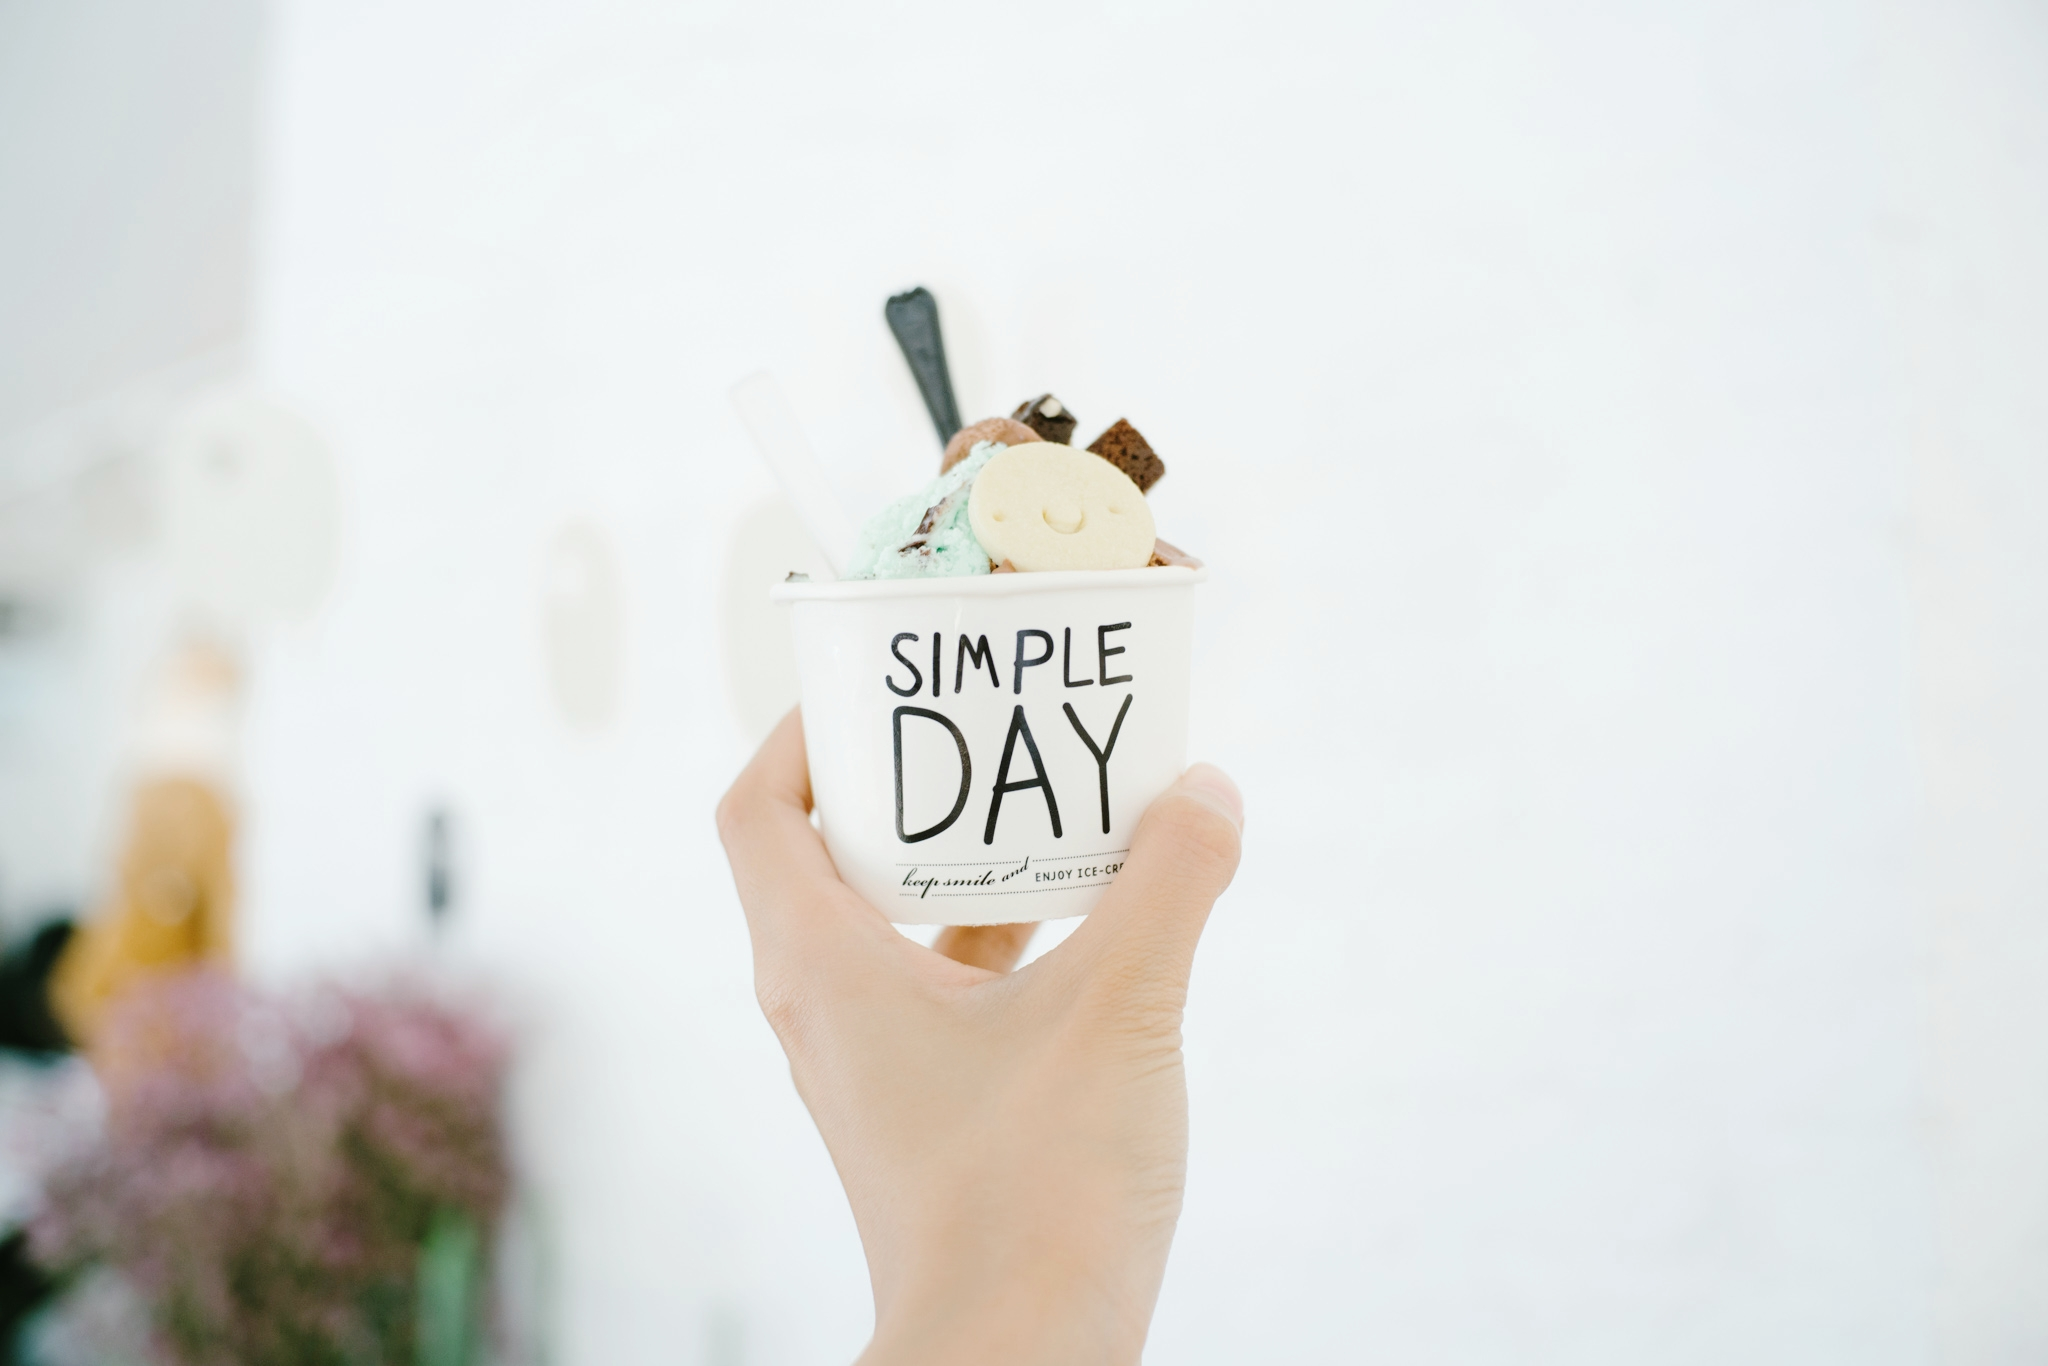 GELATO - We served a simple unique Ice Cream favors everyday. We believe that